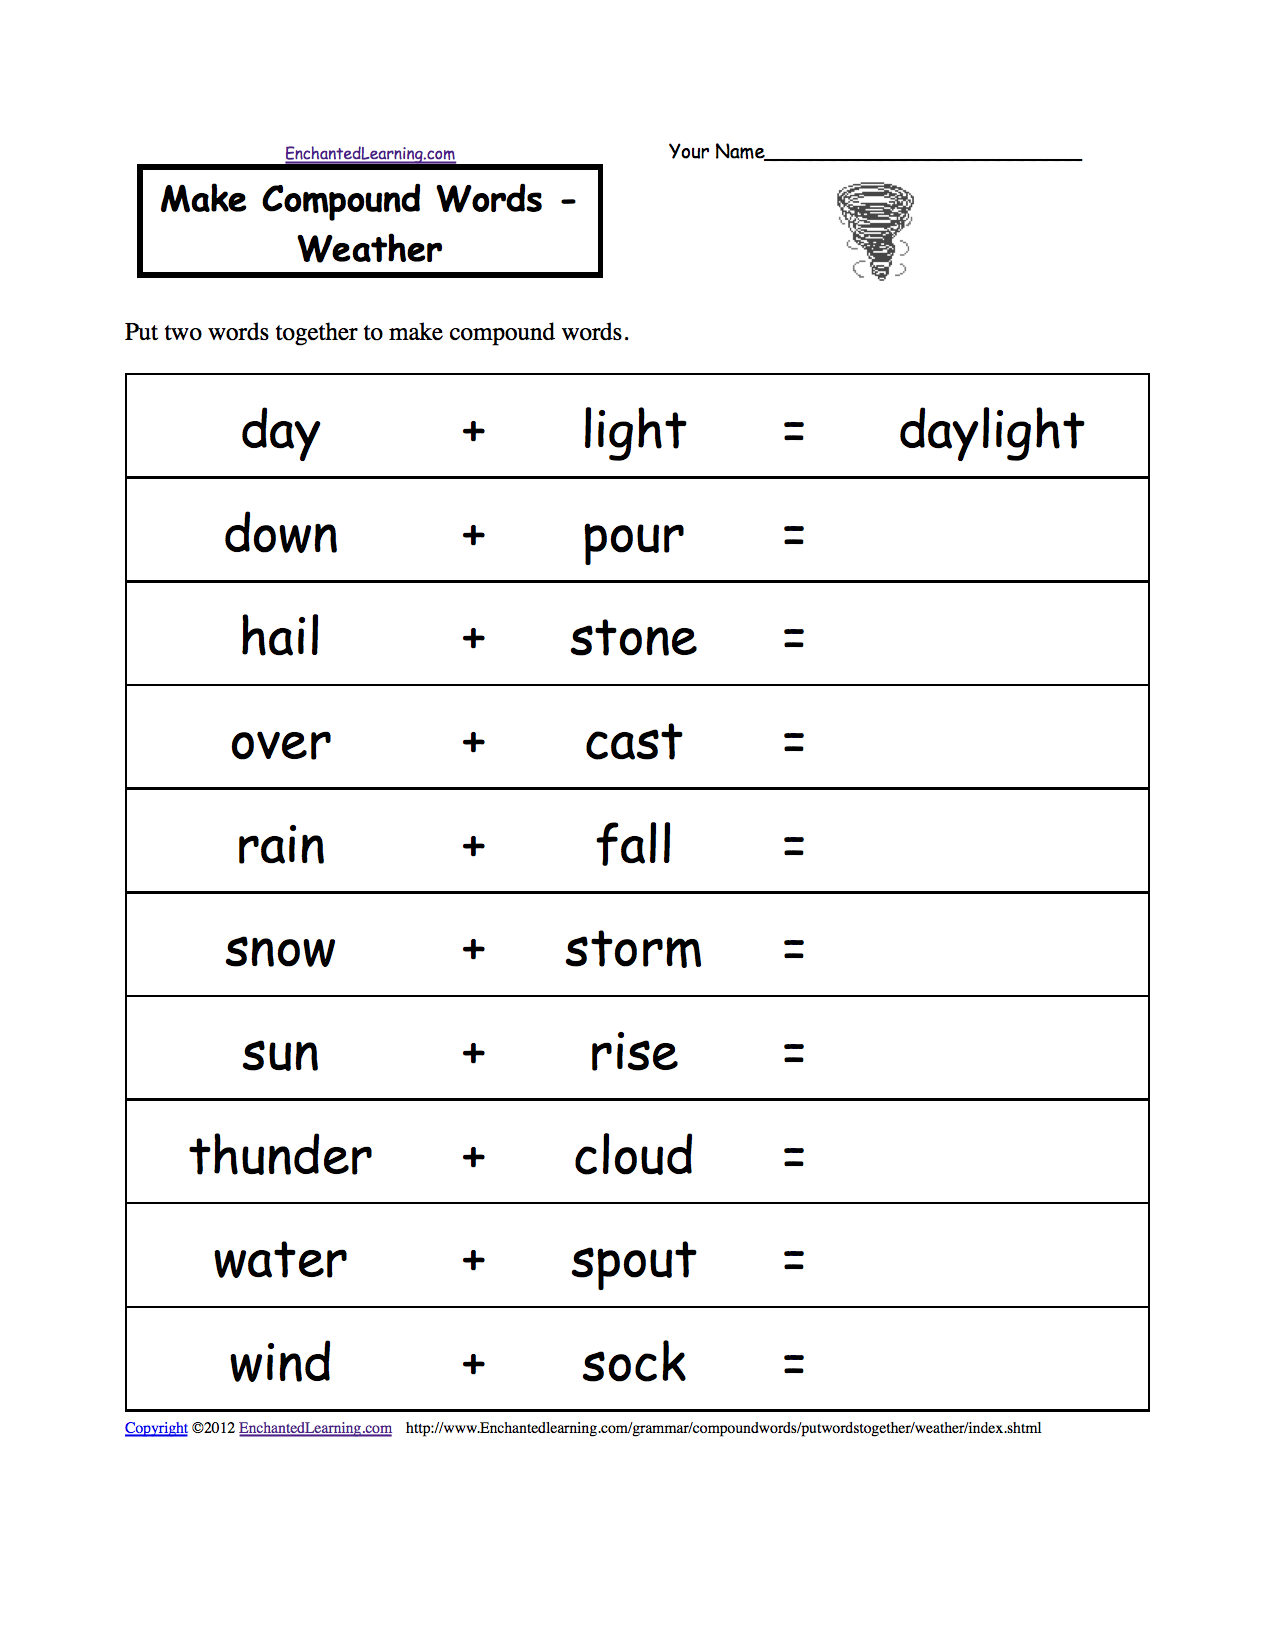 Make compound words weather printable worksheet put two words together